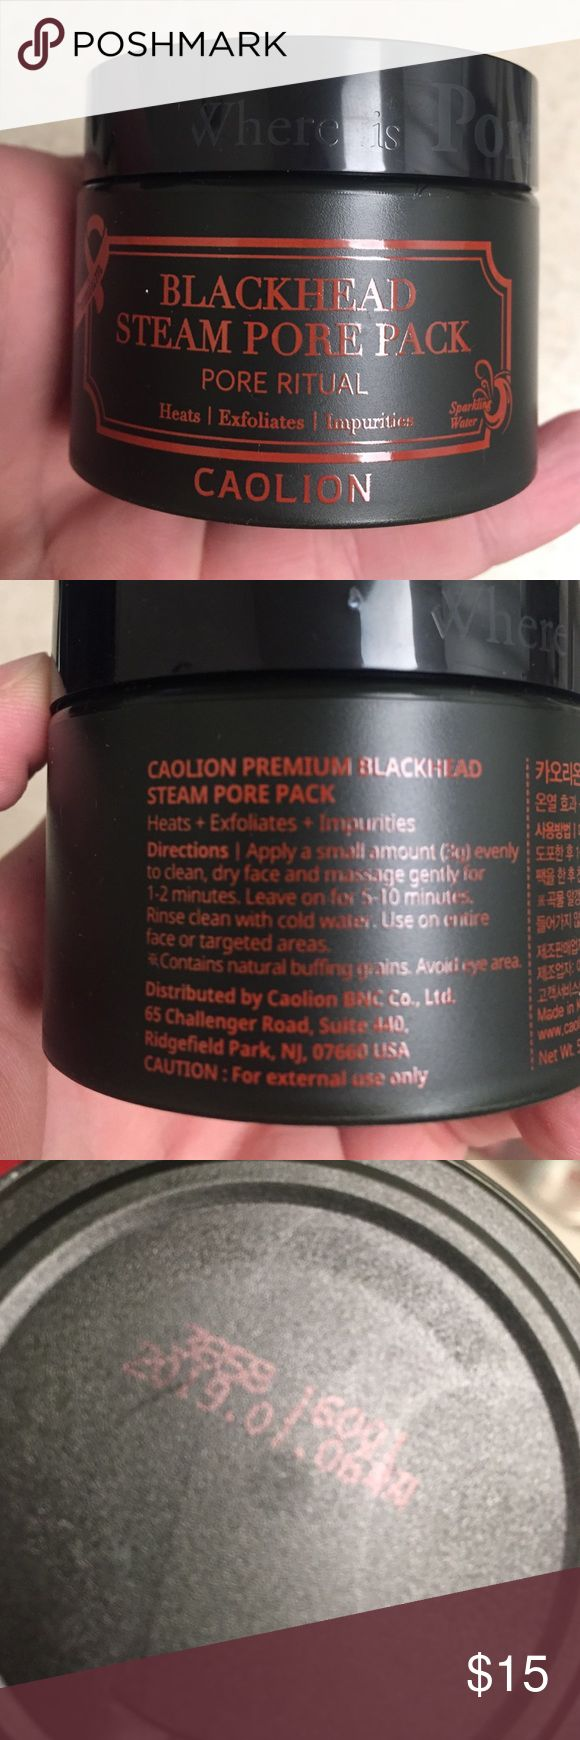 Caolion Blackhead Steam Pore Pack 1.7 oz container. Used once. Great deal on a very popular product sold at Urban Outfitters. Urban Outfitters Other